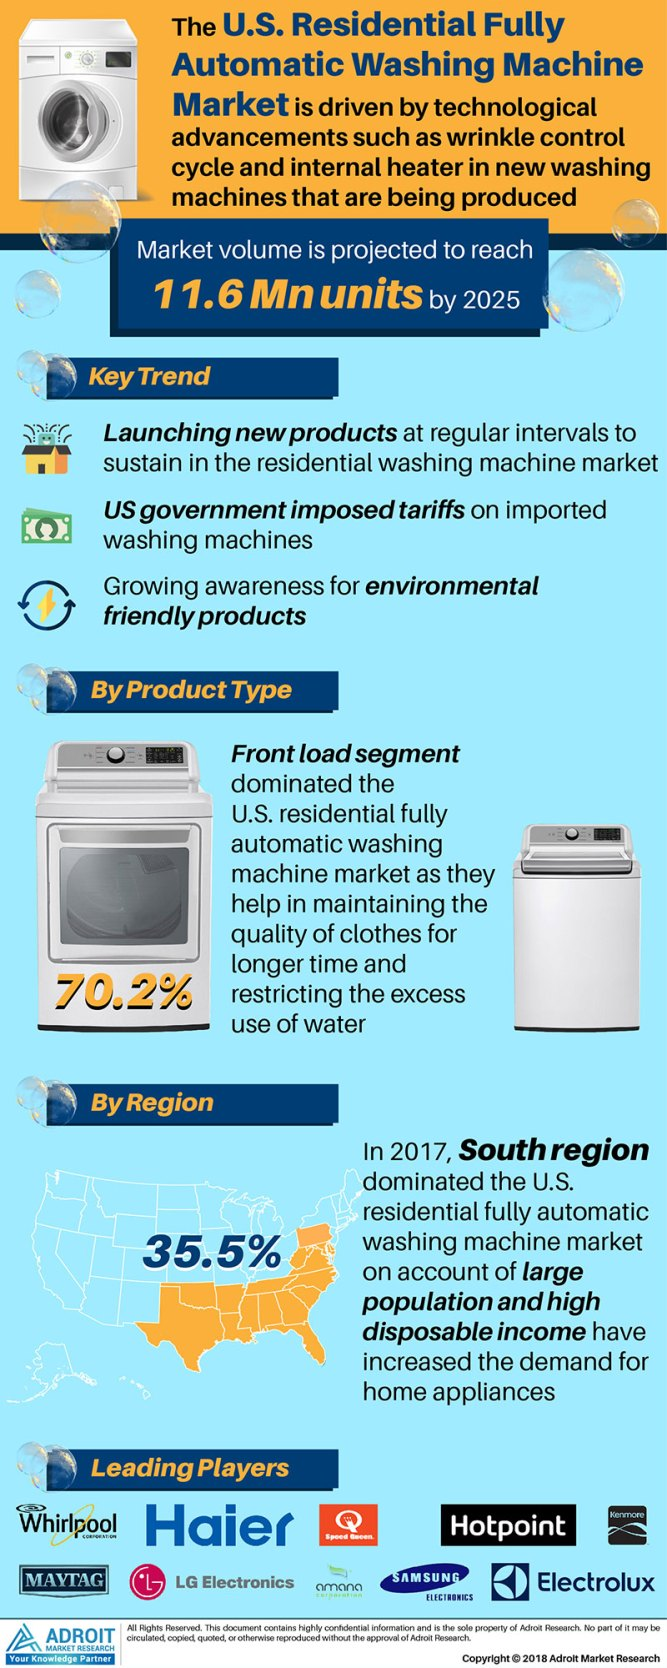 Residential Fully Automatic Washing Machine Market in US : User Demand, Recent Developments, Future Growth & Benefits, End-  User, Competative Landscape and Opportunity Assessment by 2025 1